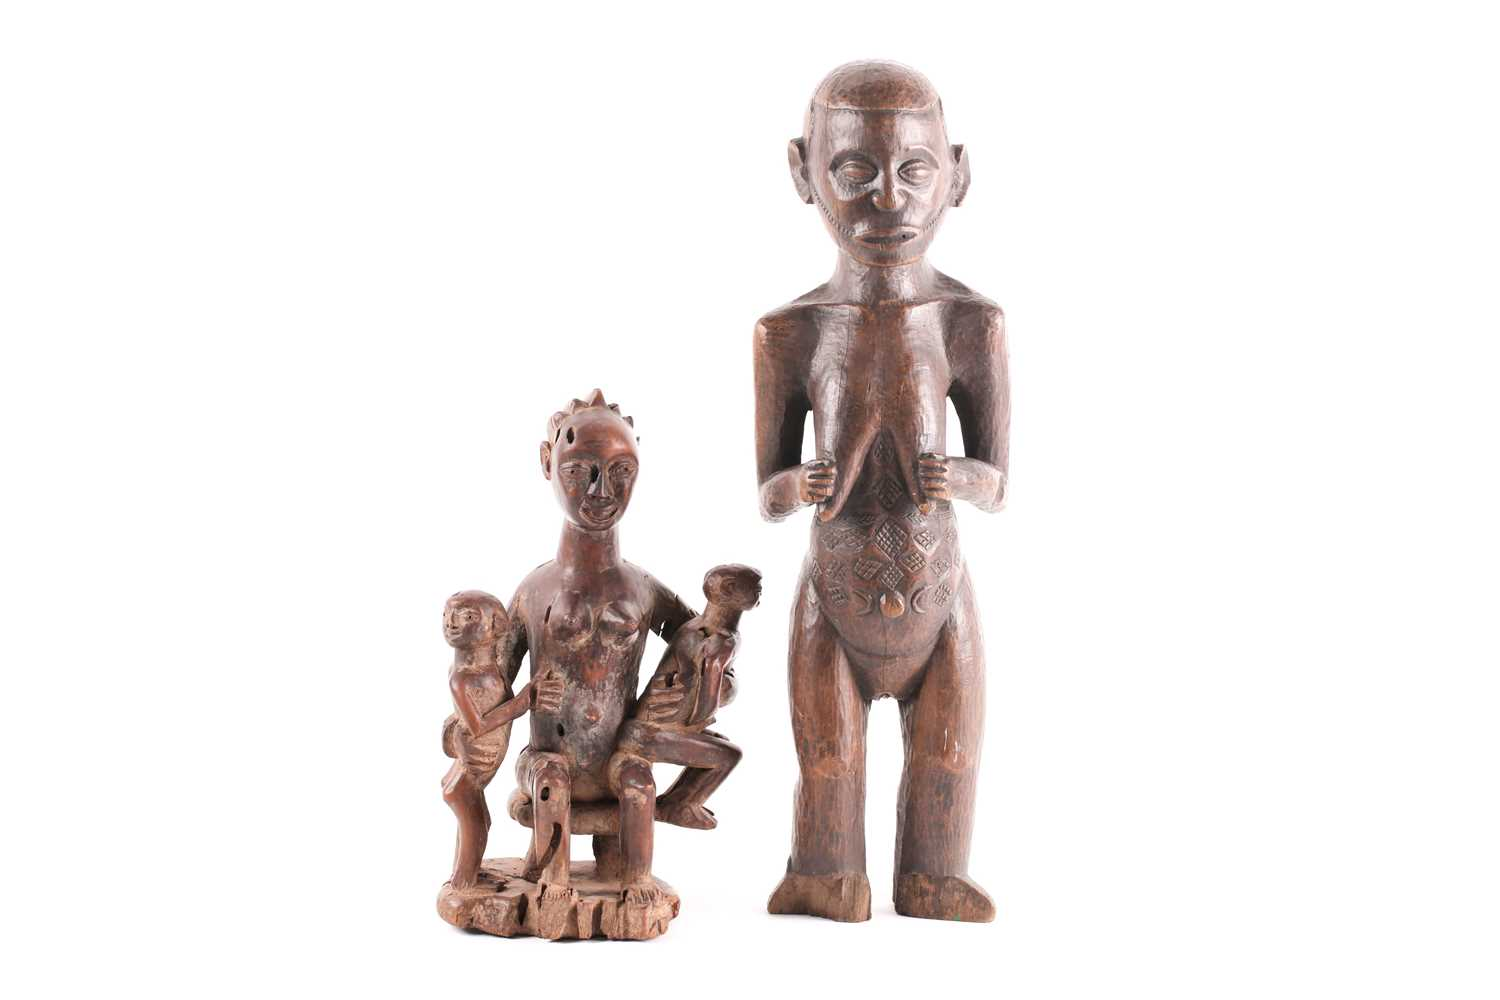 A Baule maternity figure, Ivory Coast, the smiling figure seated upon a stool and holding onto two